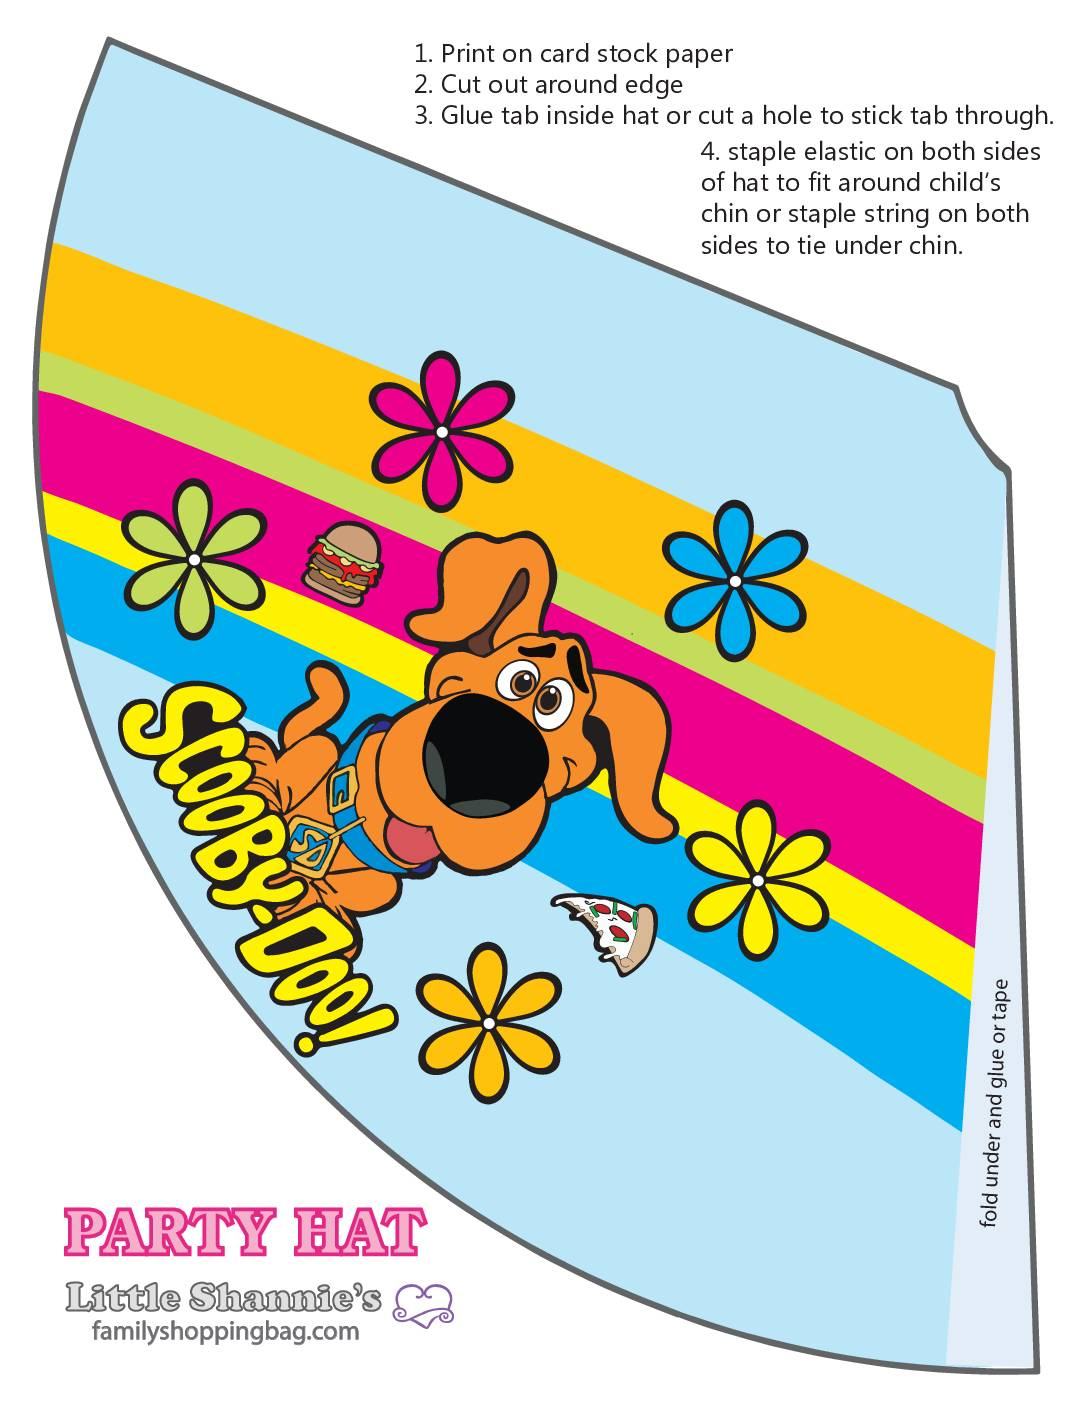 Party Hat 2 Scooby Doo